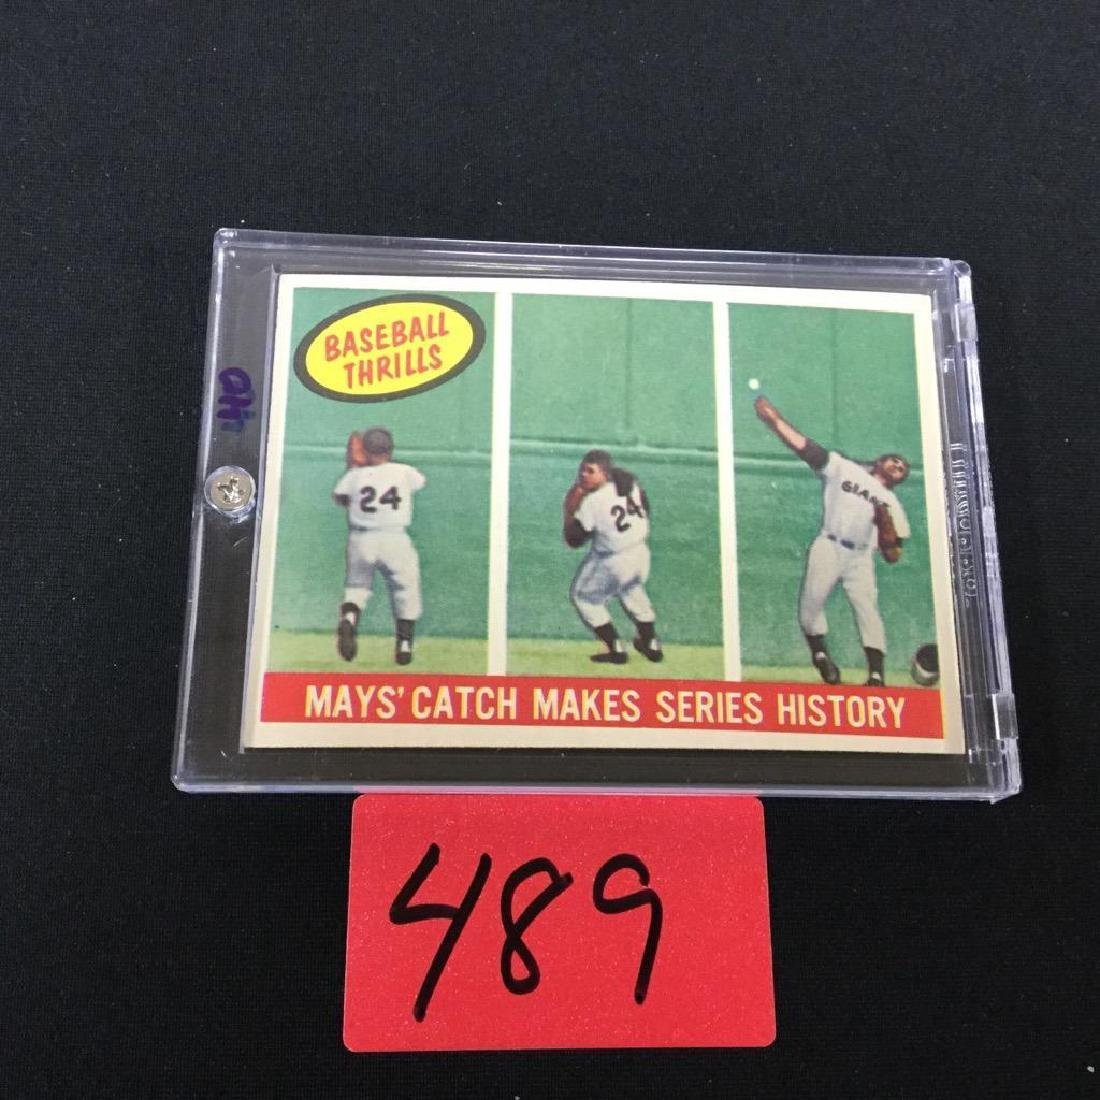 1959 TOPPS BASEBALL THRILLS MAY'S CATCH MAKES SERIES